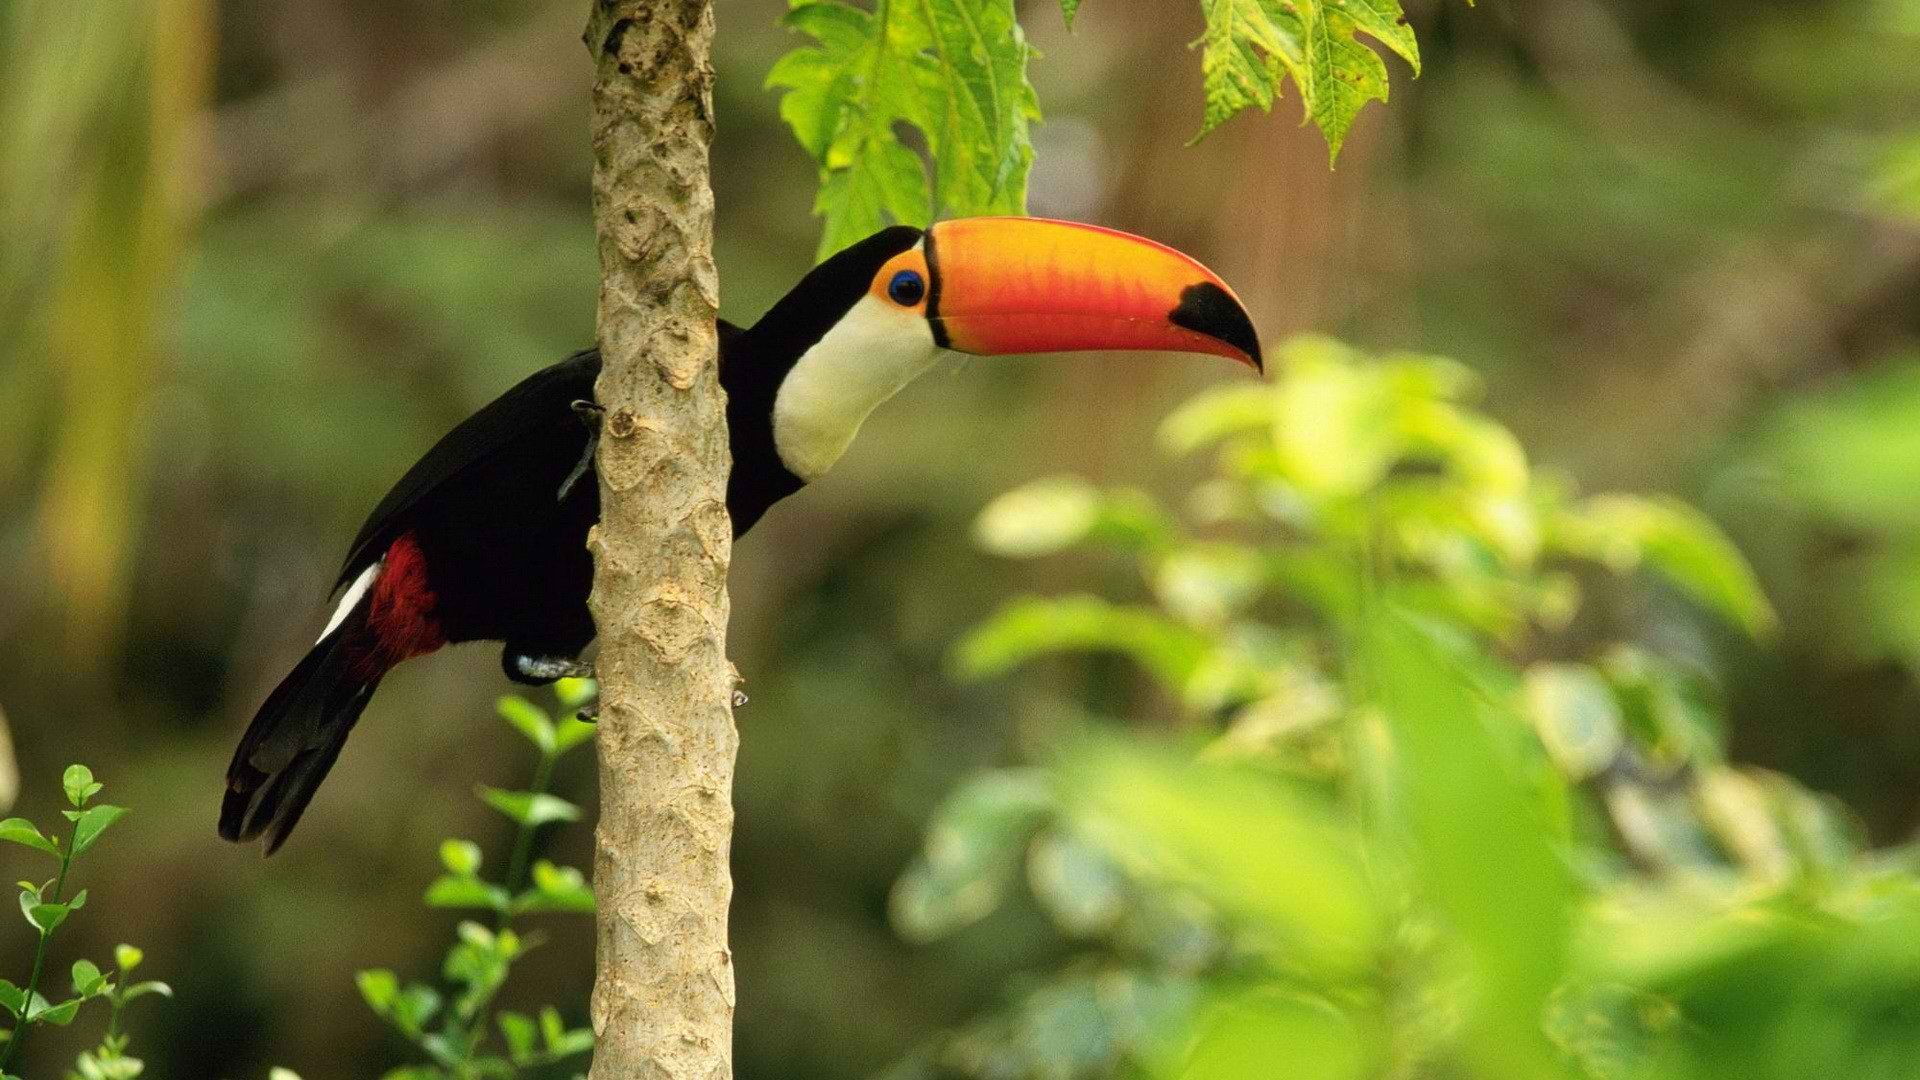 Best Toucan wallpaper ID:57320 for High Resolution hd 1080p computer